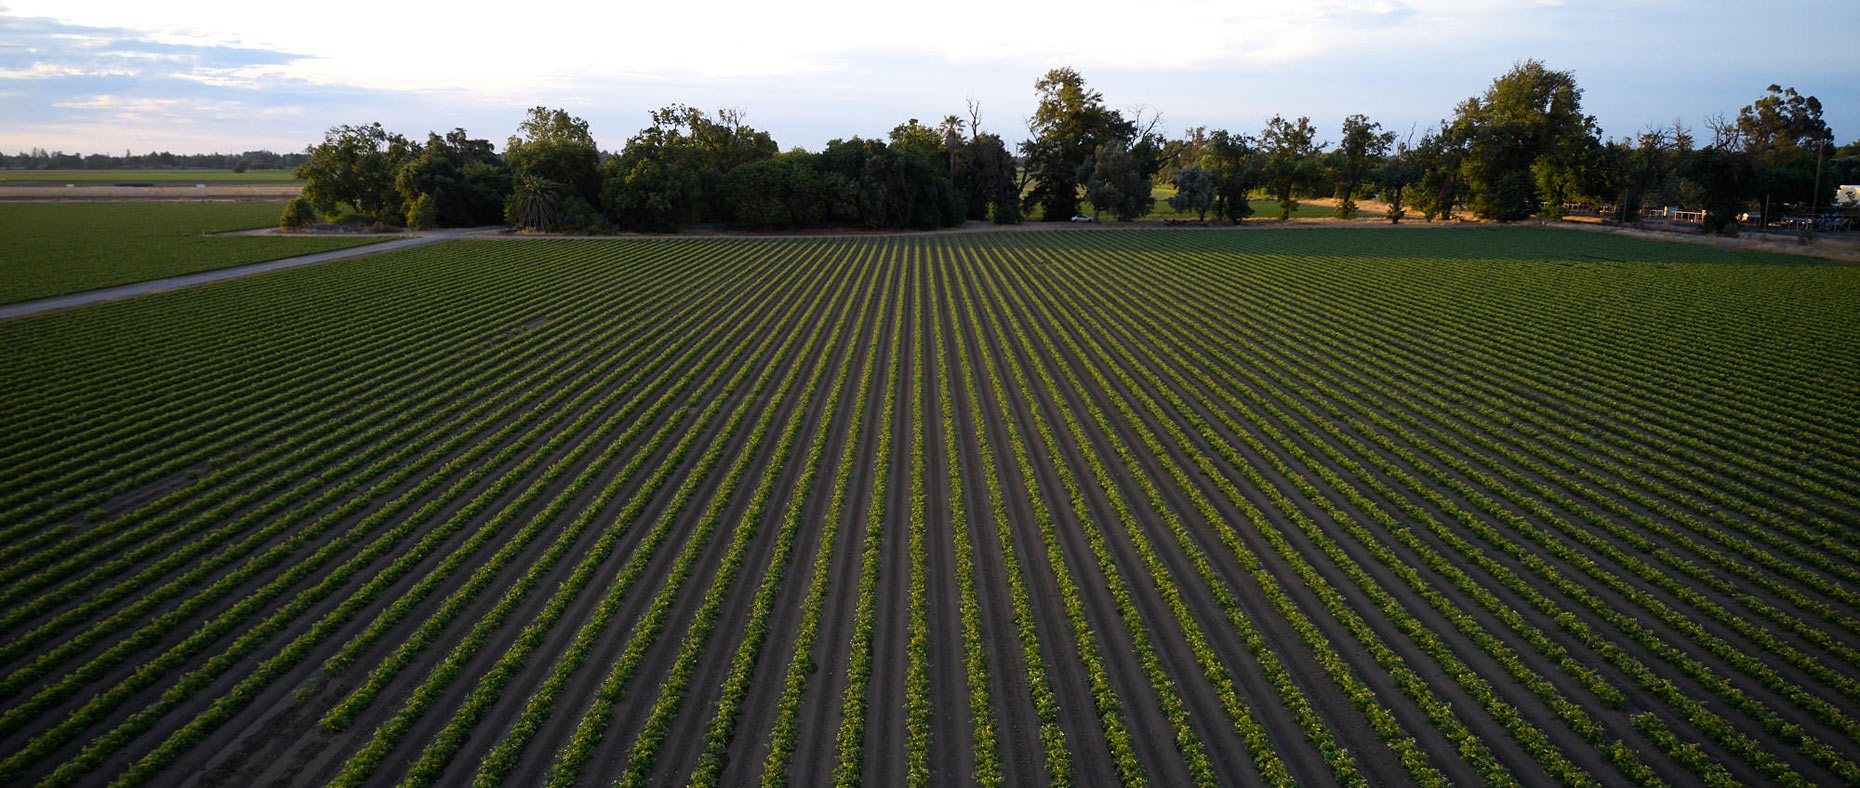 Rows of Crops Growing at a Farm